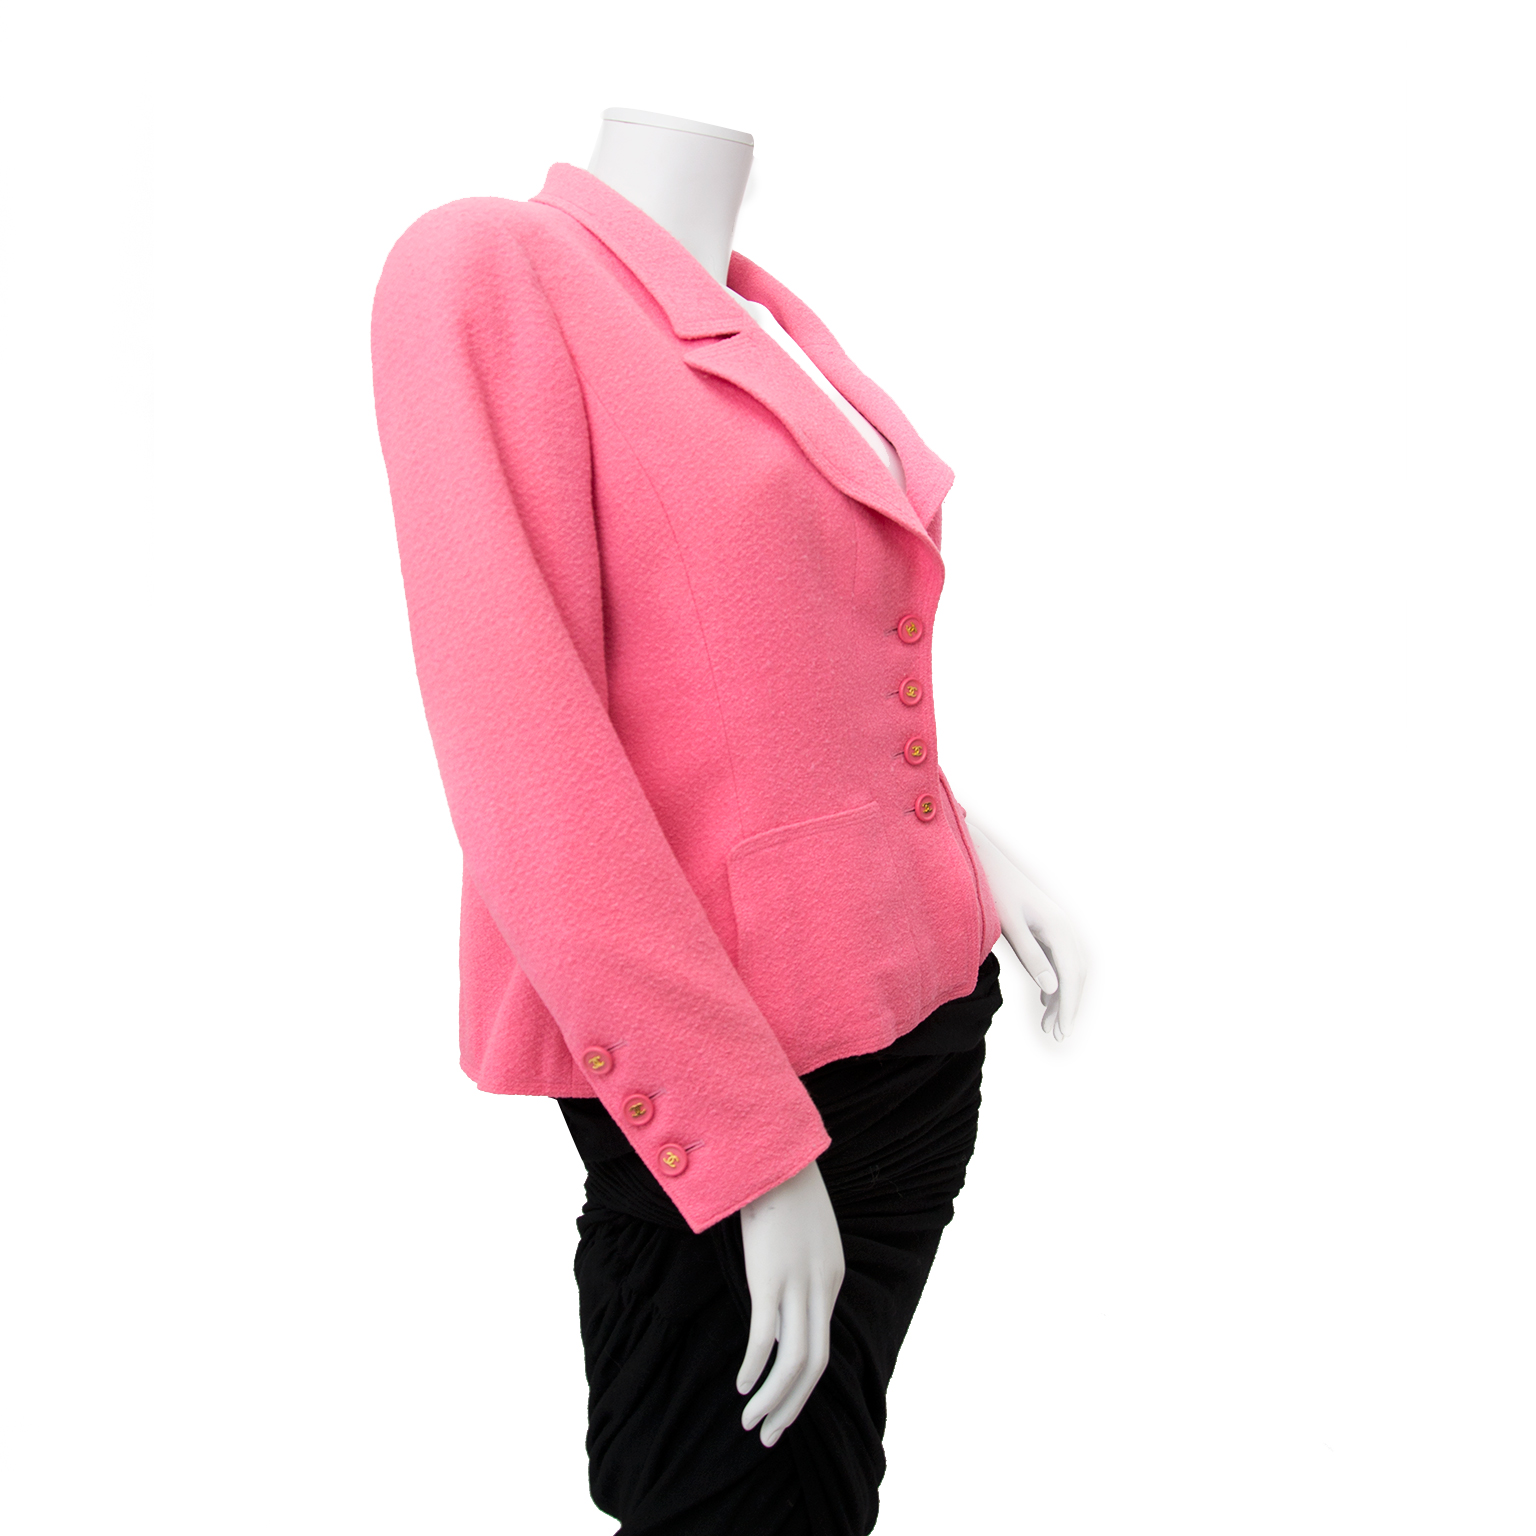 chanel pink blazer now online for the best price at labellov.com